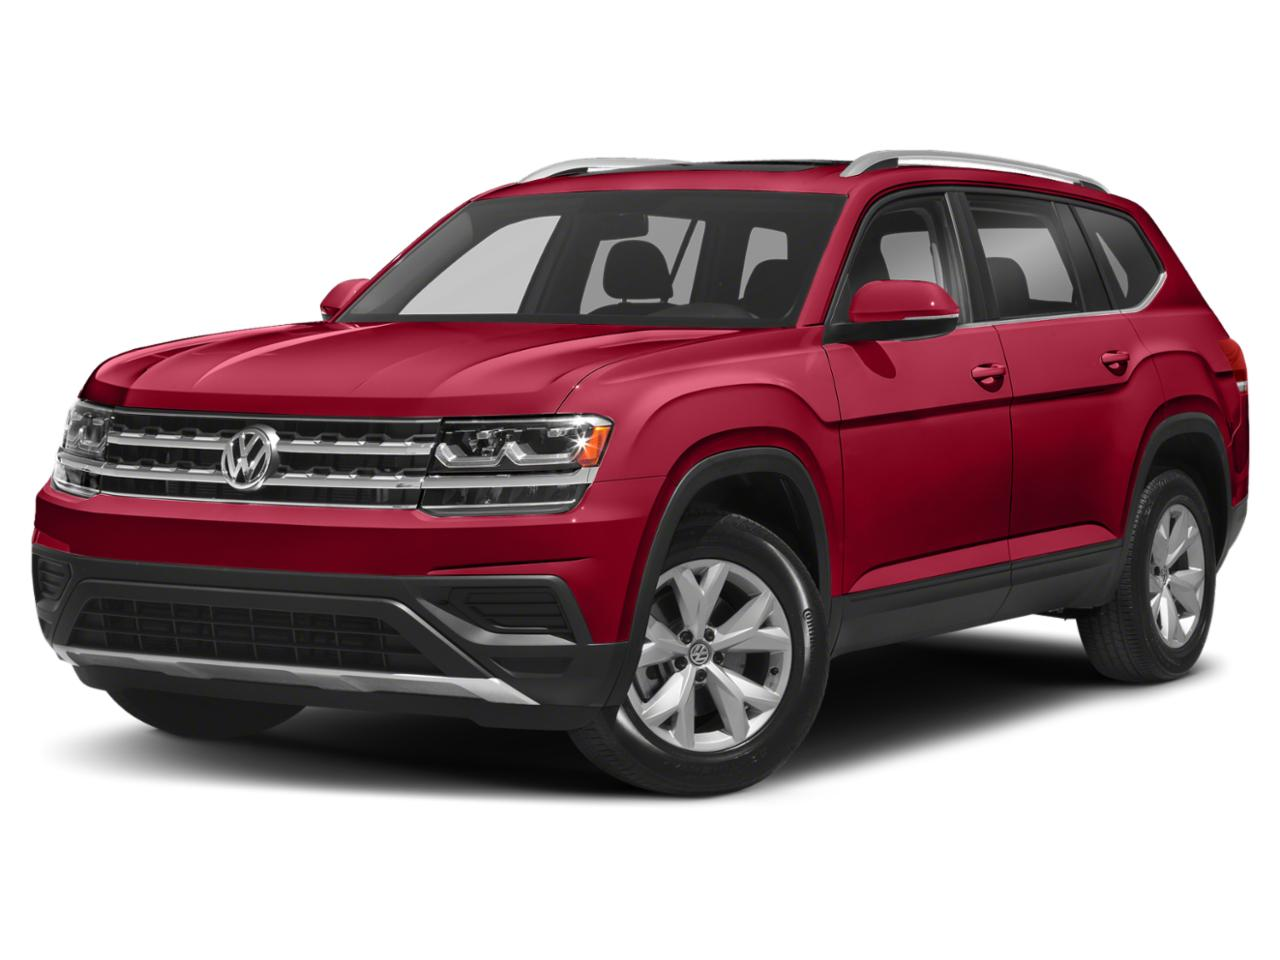 2018 Volkswagen Atlas Vehicle Photo in Cape May Court House, NJ 08210